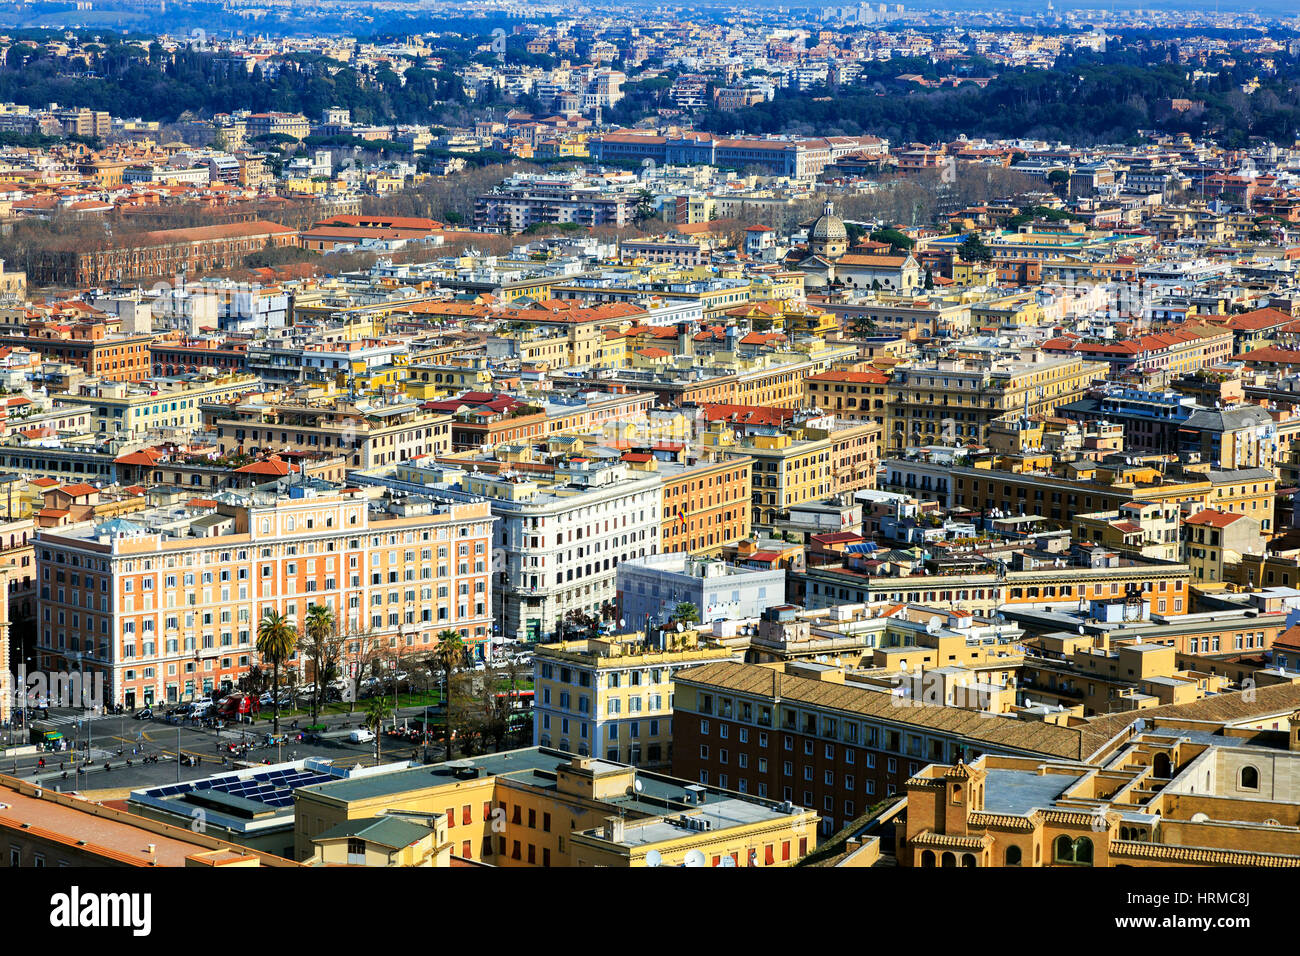 Rome skyline and city centre, Italy - Stock Image